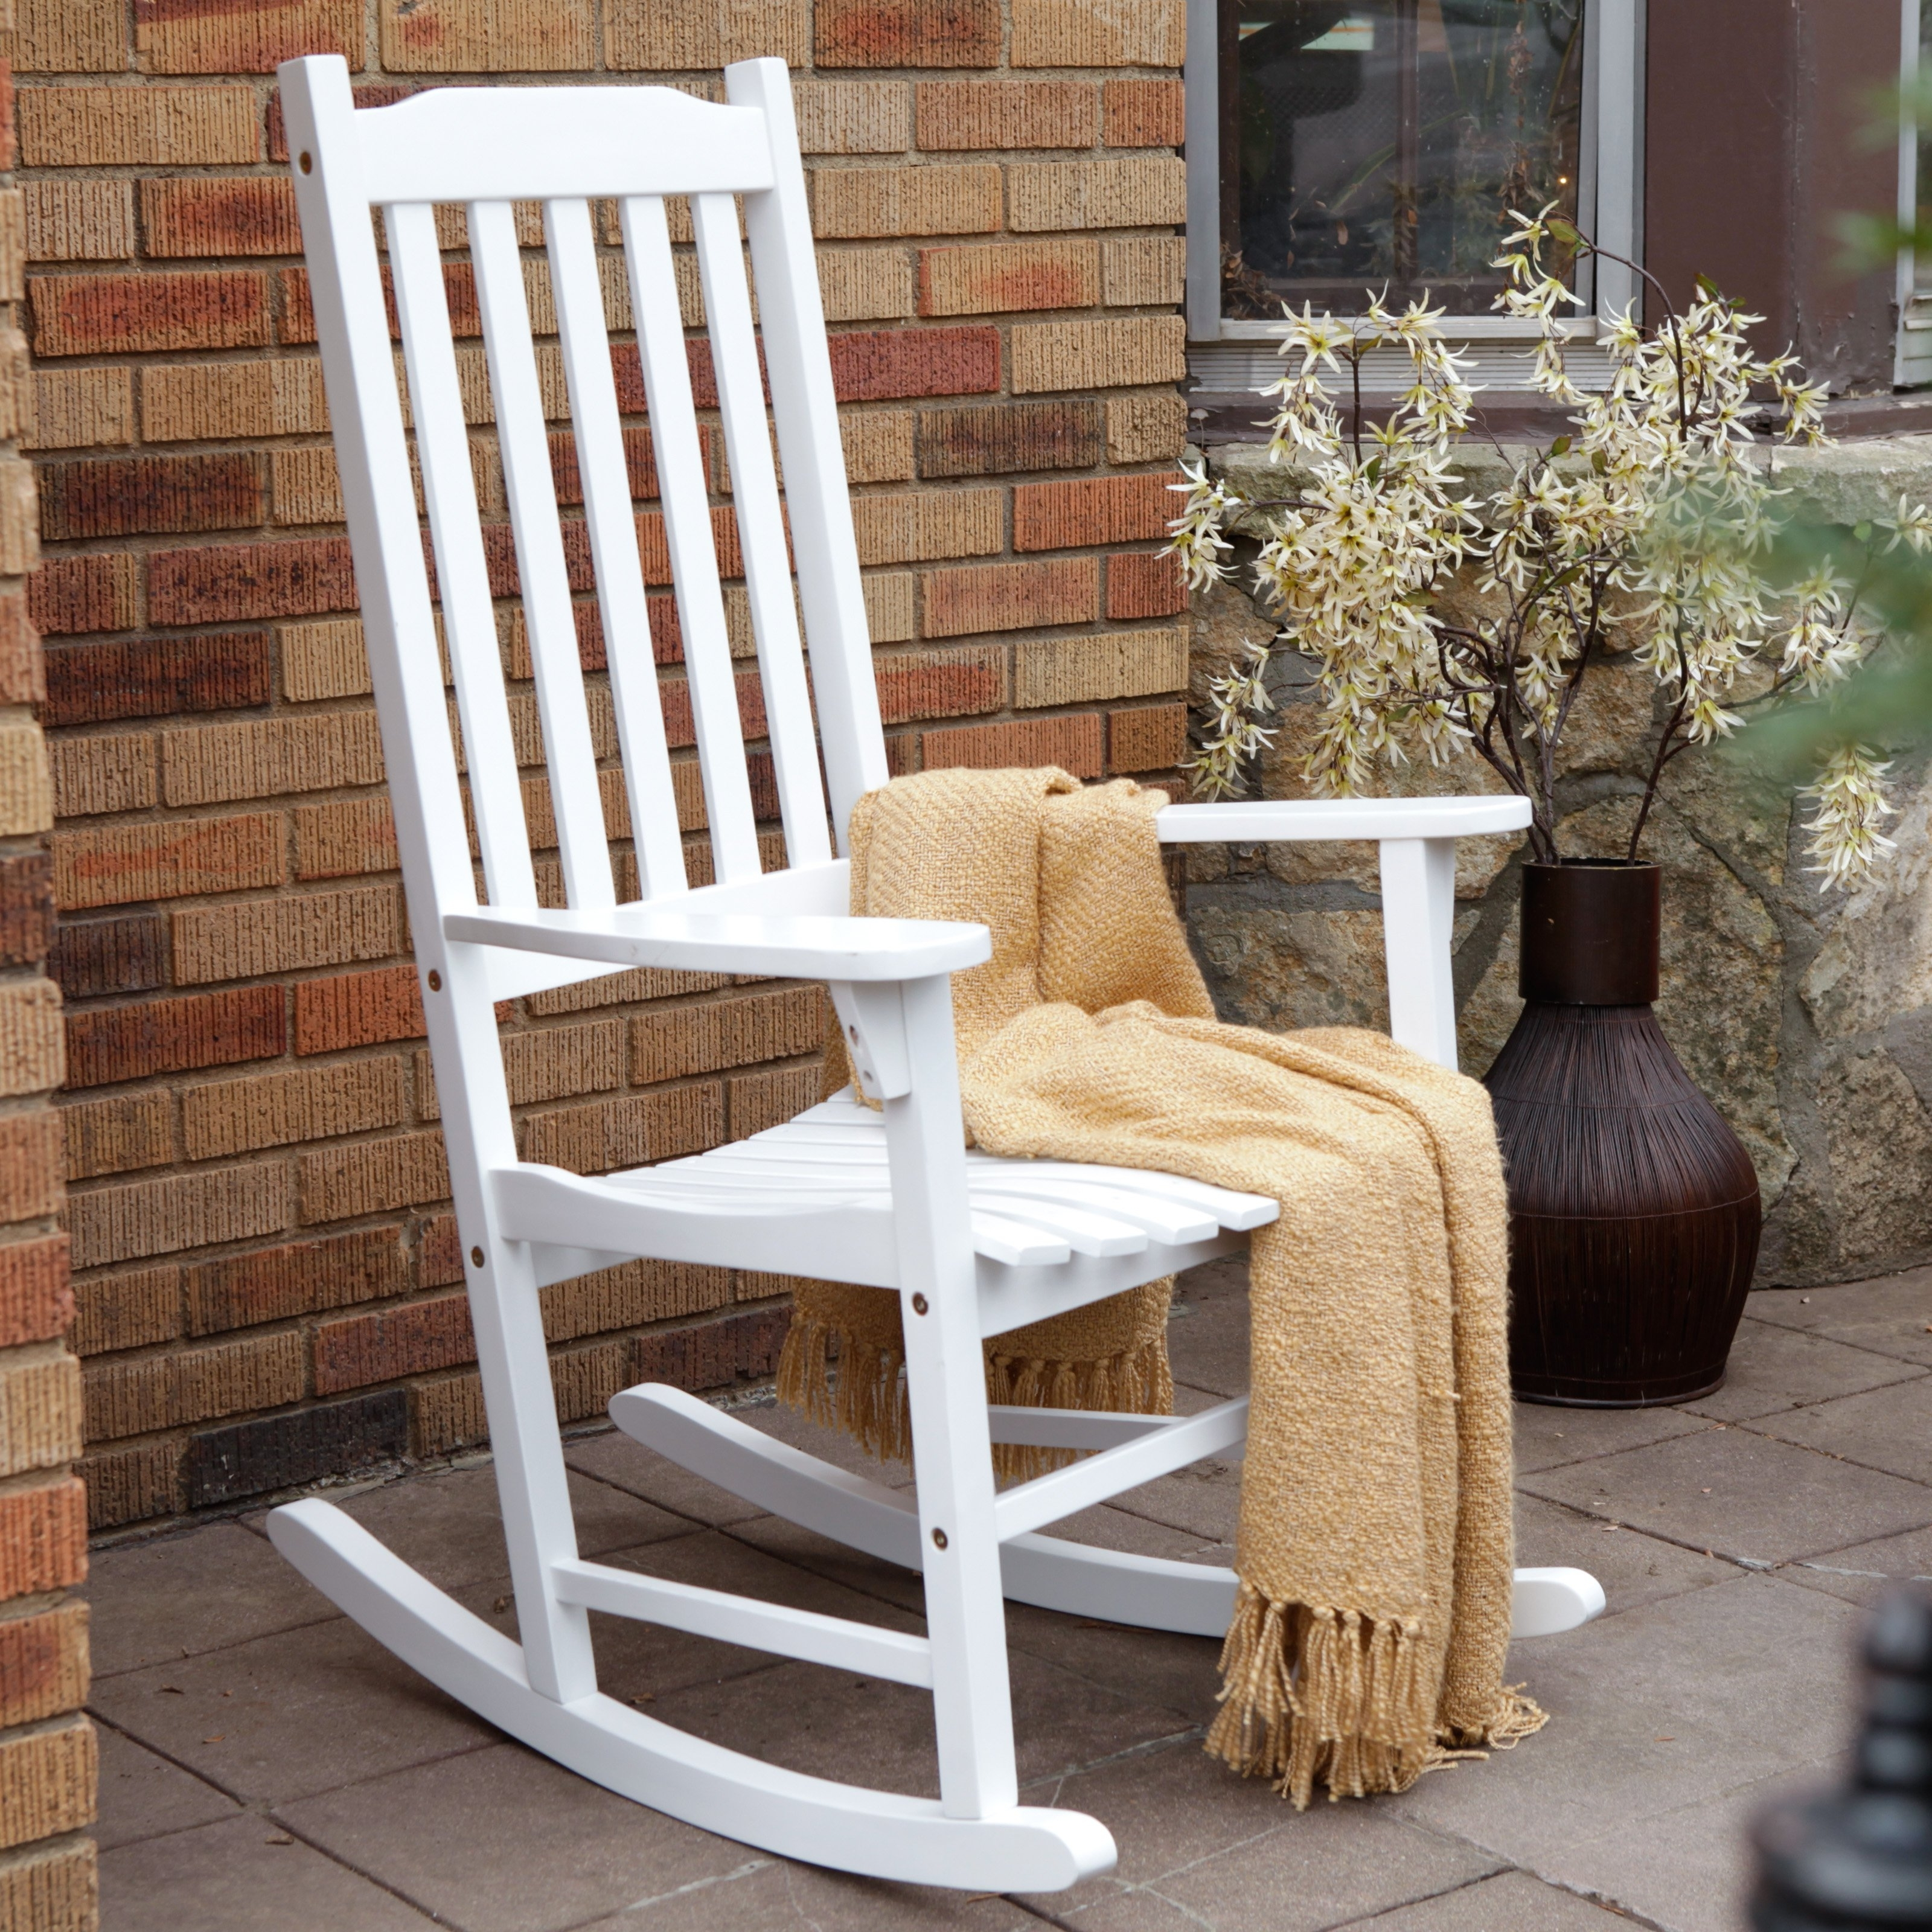 Rocking Chair Outdoor Wooden Intended For Recent Coral Coast Indoor/outdoor Mission Slat Rocking Chair – White (View 3 of 15)